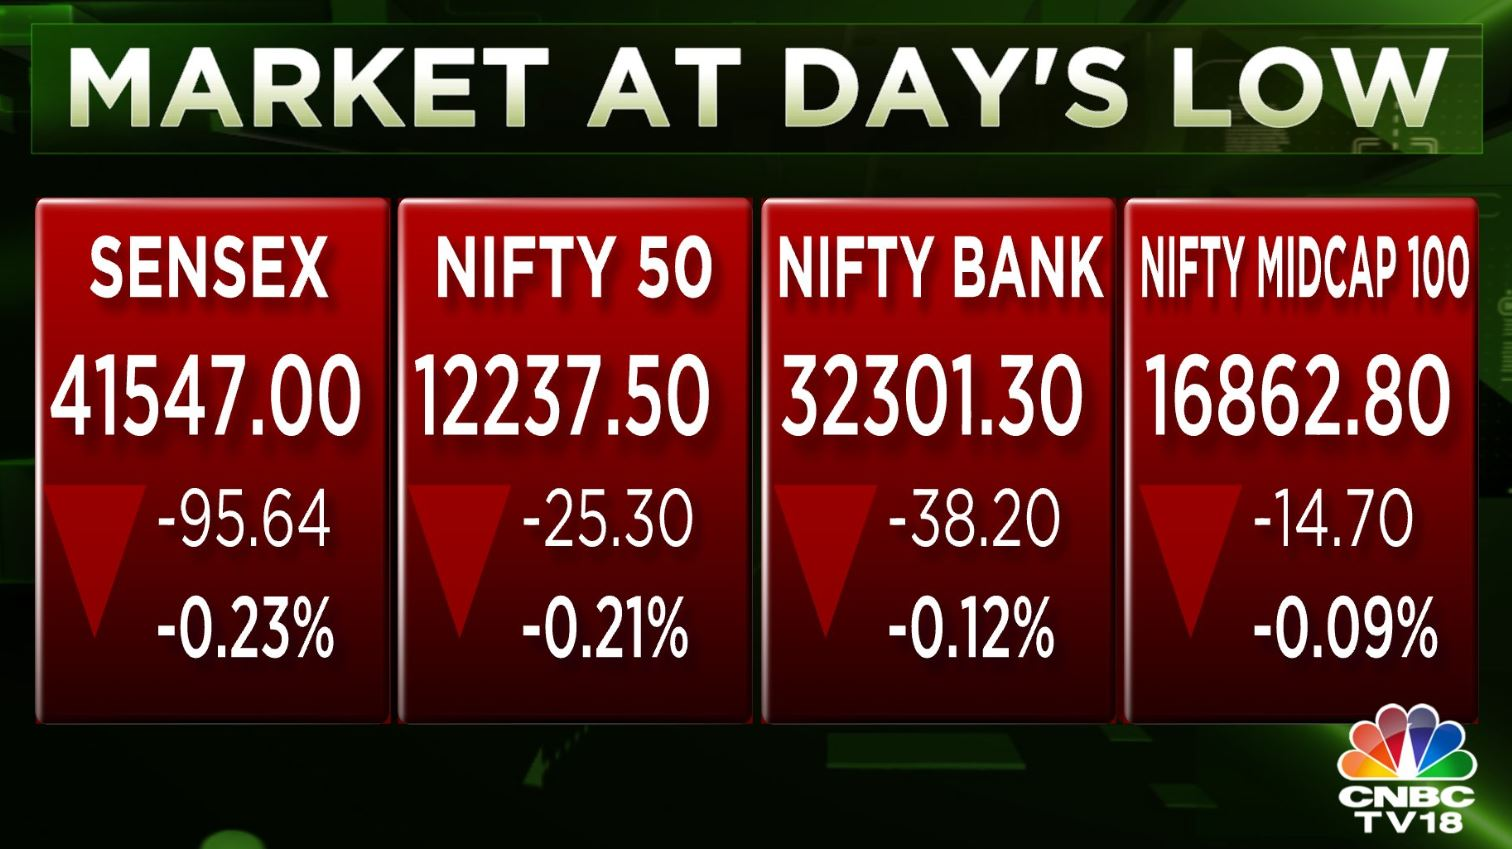 Market extends losses; benchmark indices down more than 0.2% with Sensex shedding nearly 100 points## Market extends losses; benchmark indices down more than 0.2% with Sensex shedding nearly 100 points